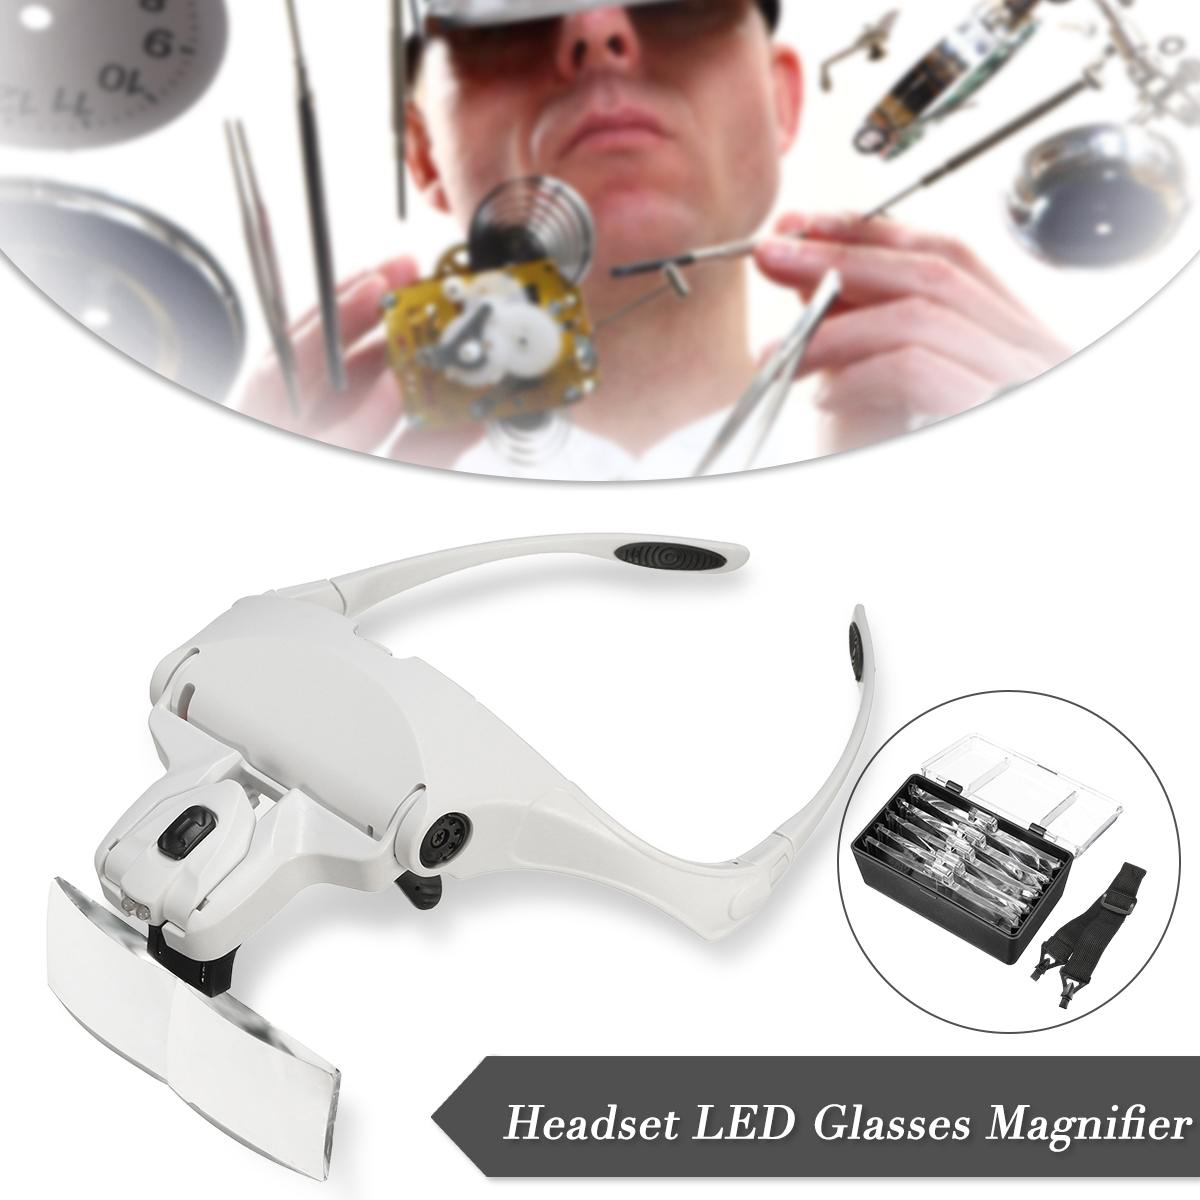 MG9892B1 Durable Quality ABS + Acrylic White Headband Headset Jeweler Magnifier Magnifying Glass Loupe Glasses With LED LightMG9892B1 Durable Quality ABS + Acrylic White Headband Headset Jeweler Magnifier Magnifying Glass Loupe Glasses With LED Light